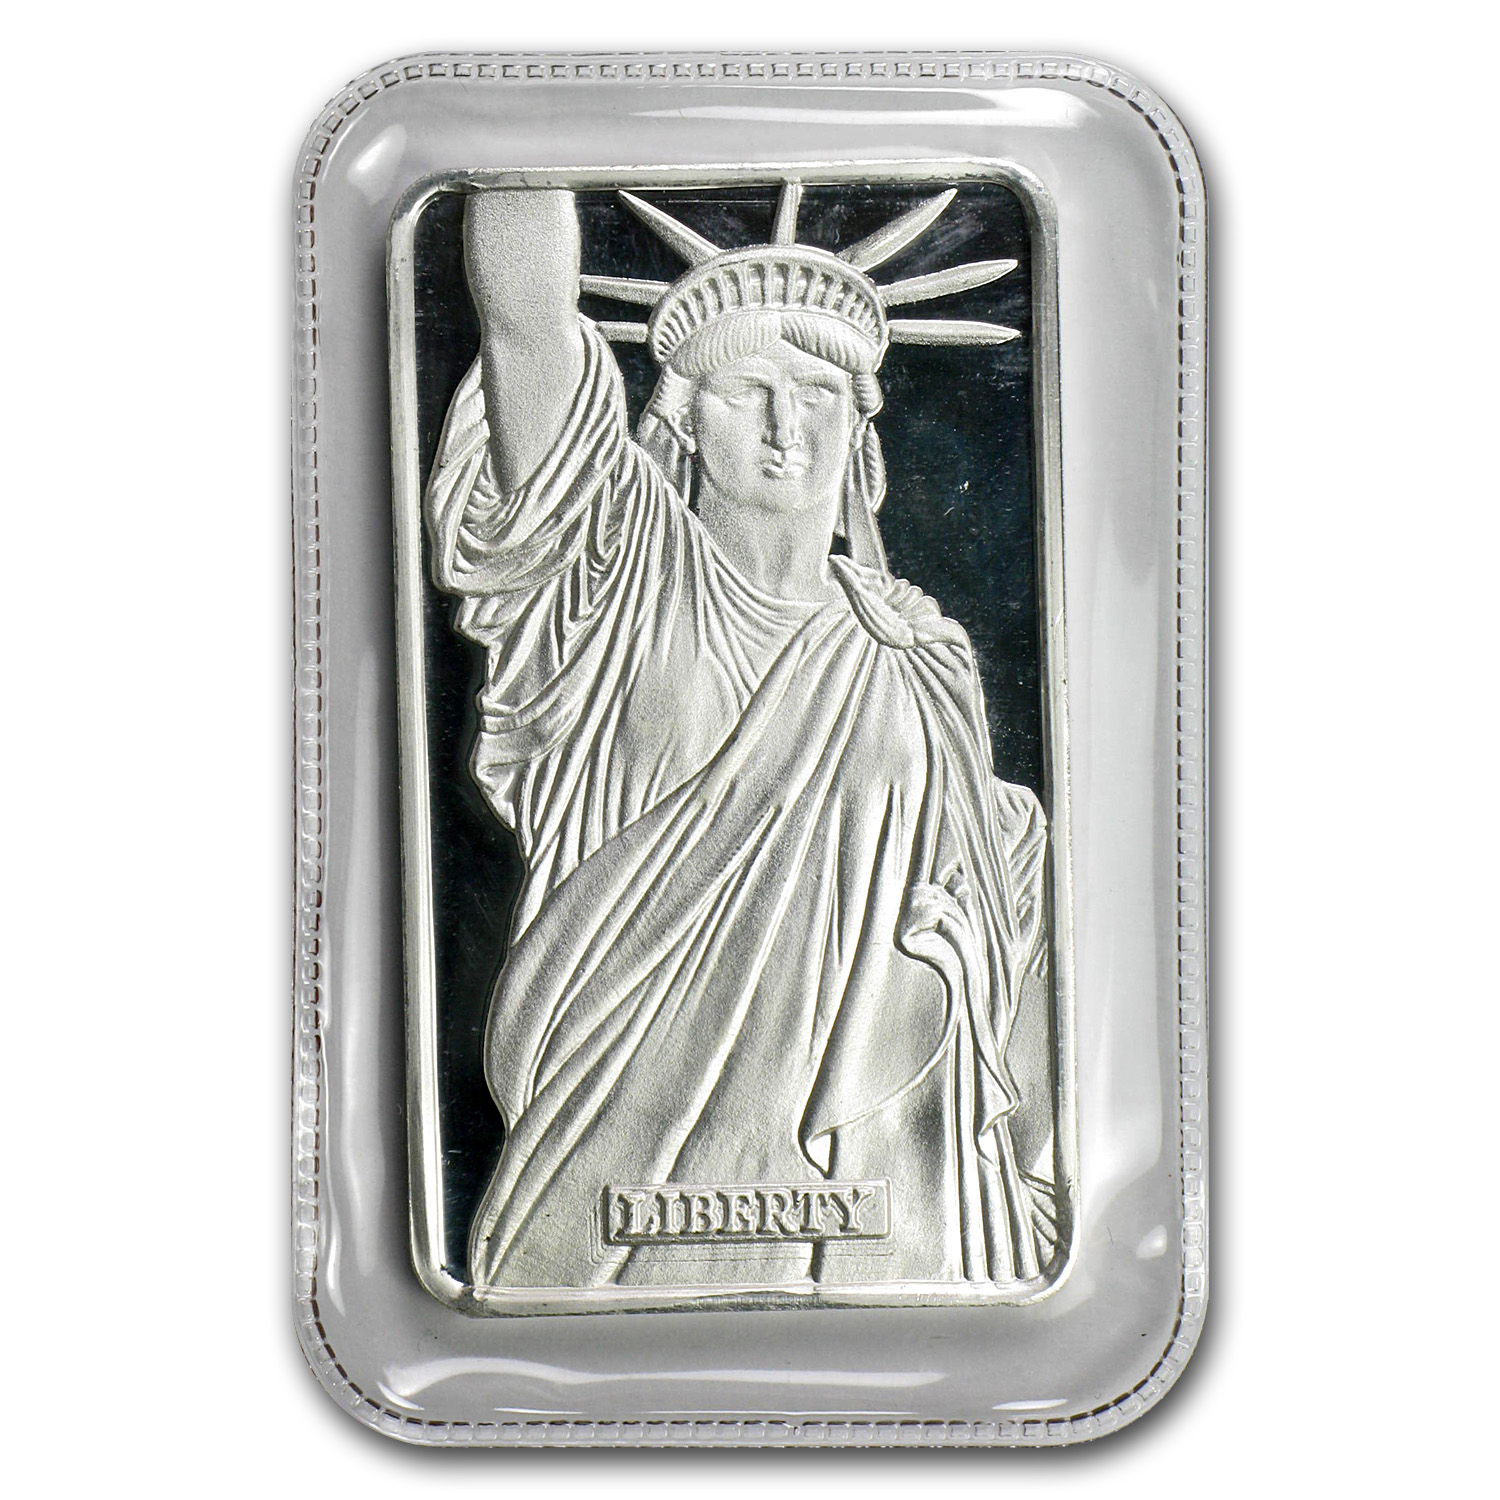 1 oz Silver Bars - Statue of Liberty (MTB/Sealed/COA)